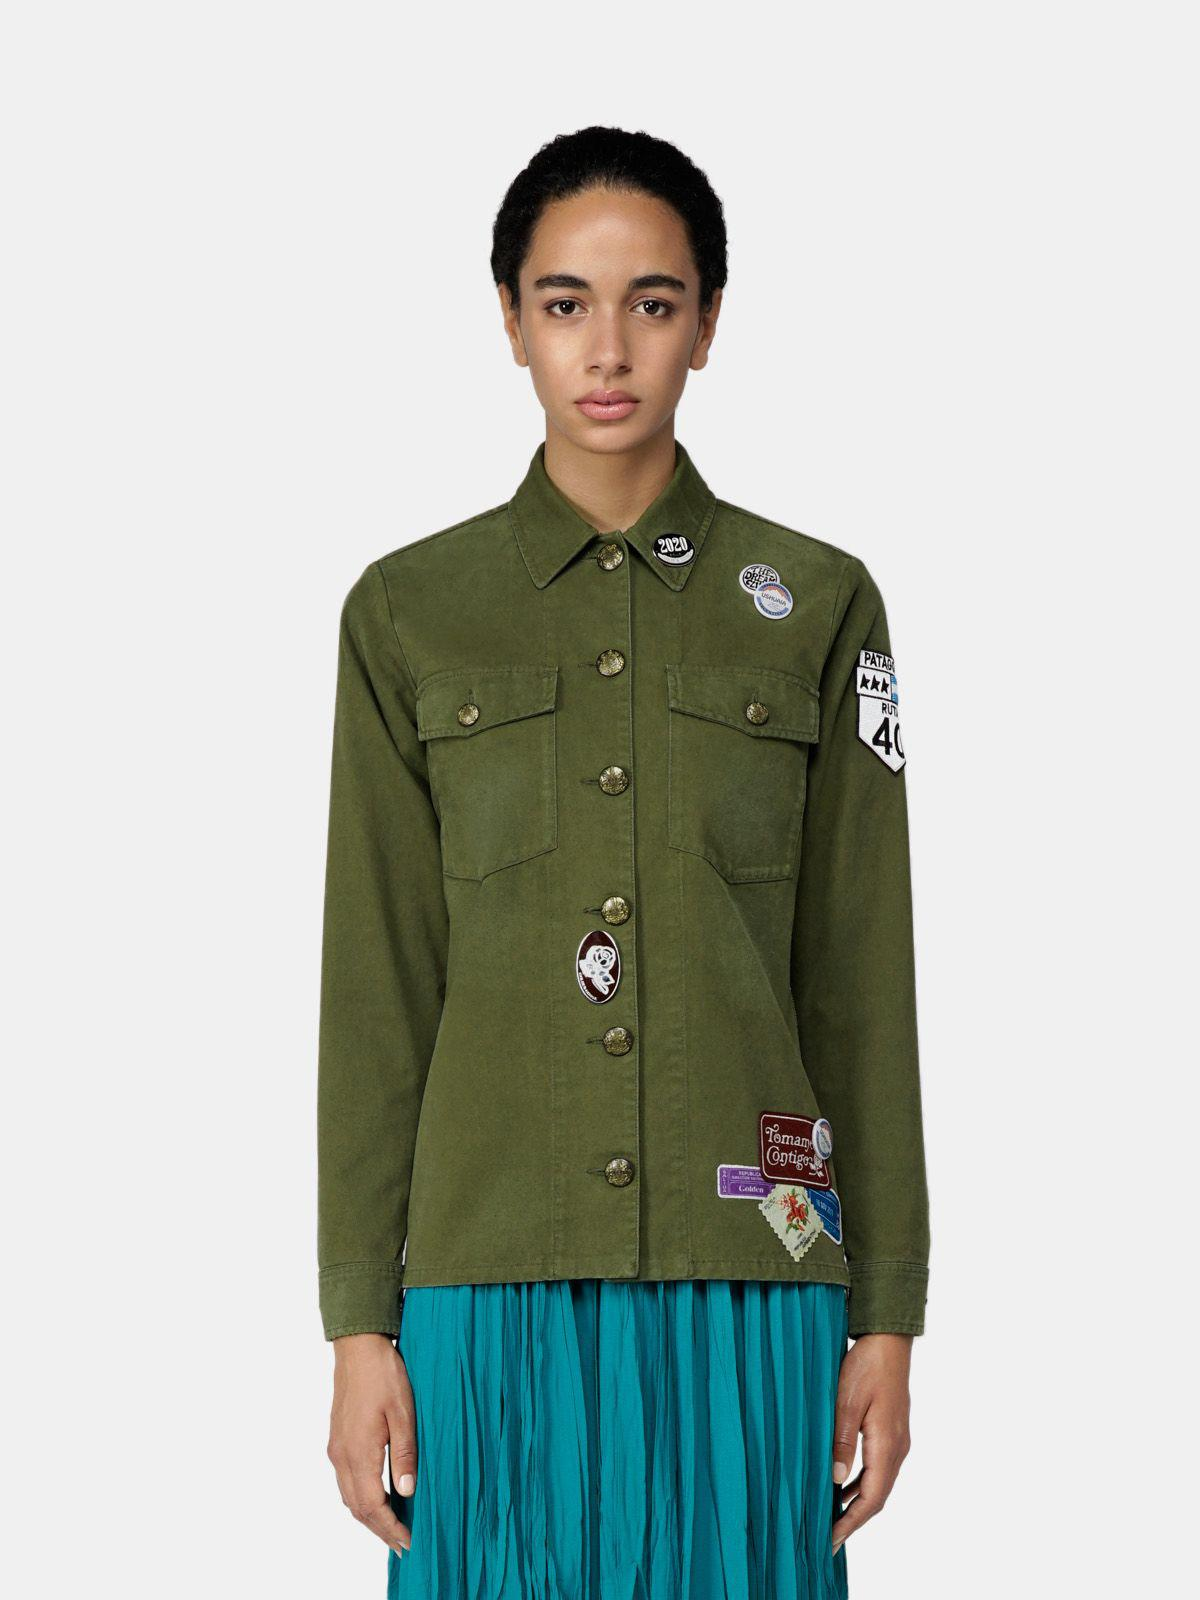 Angiolina jacket in cotton drill with Argentina patch